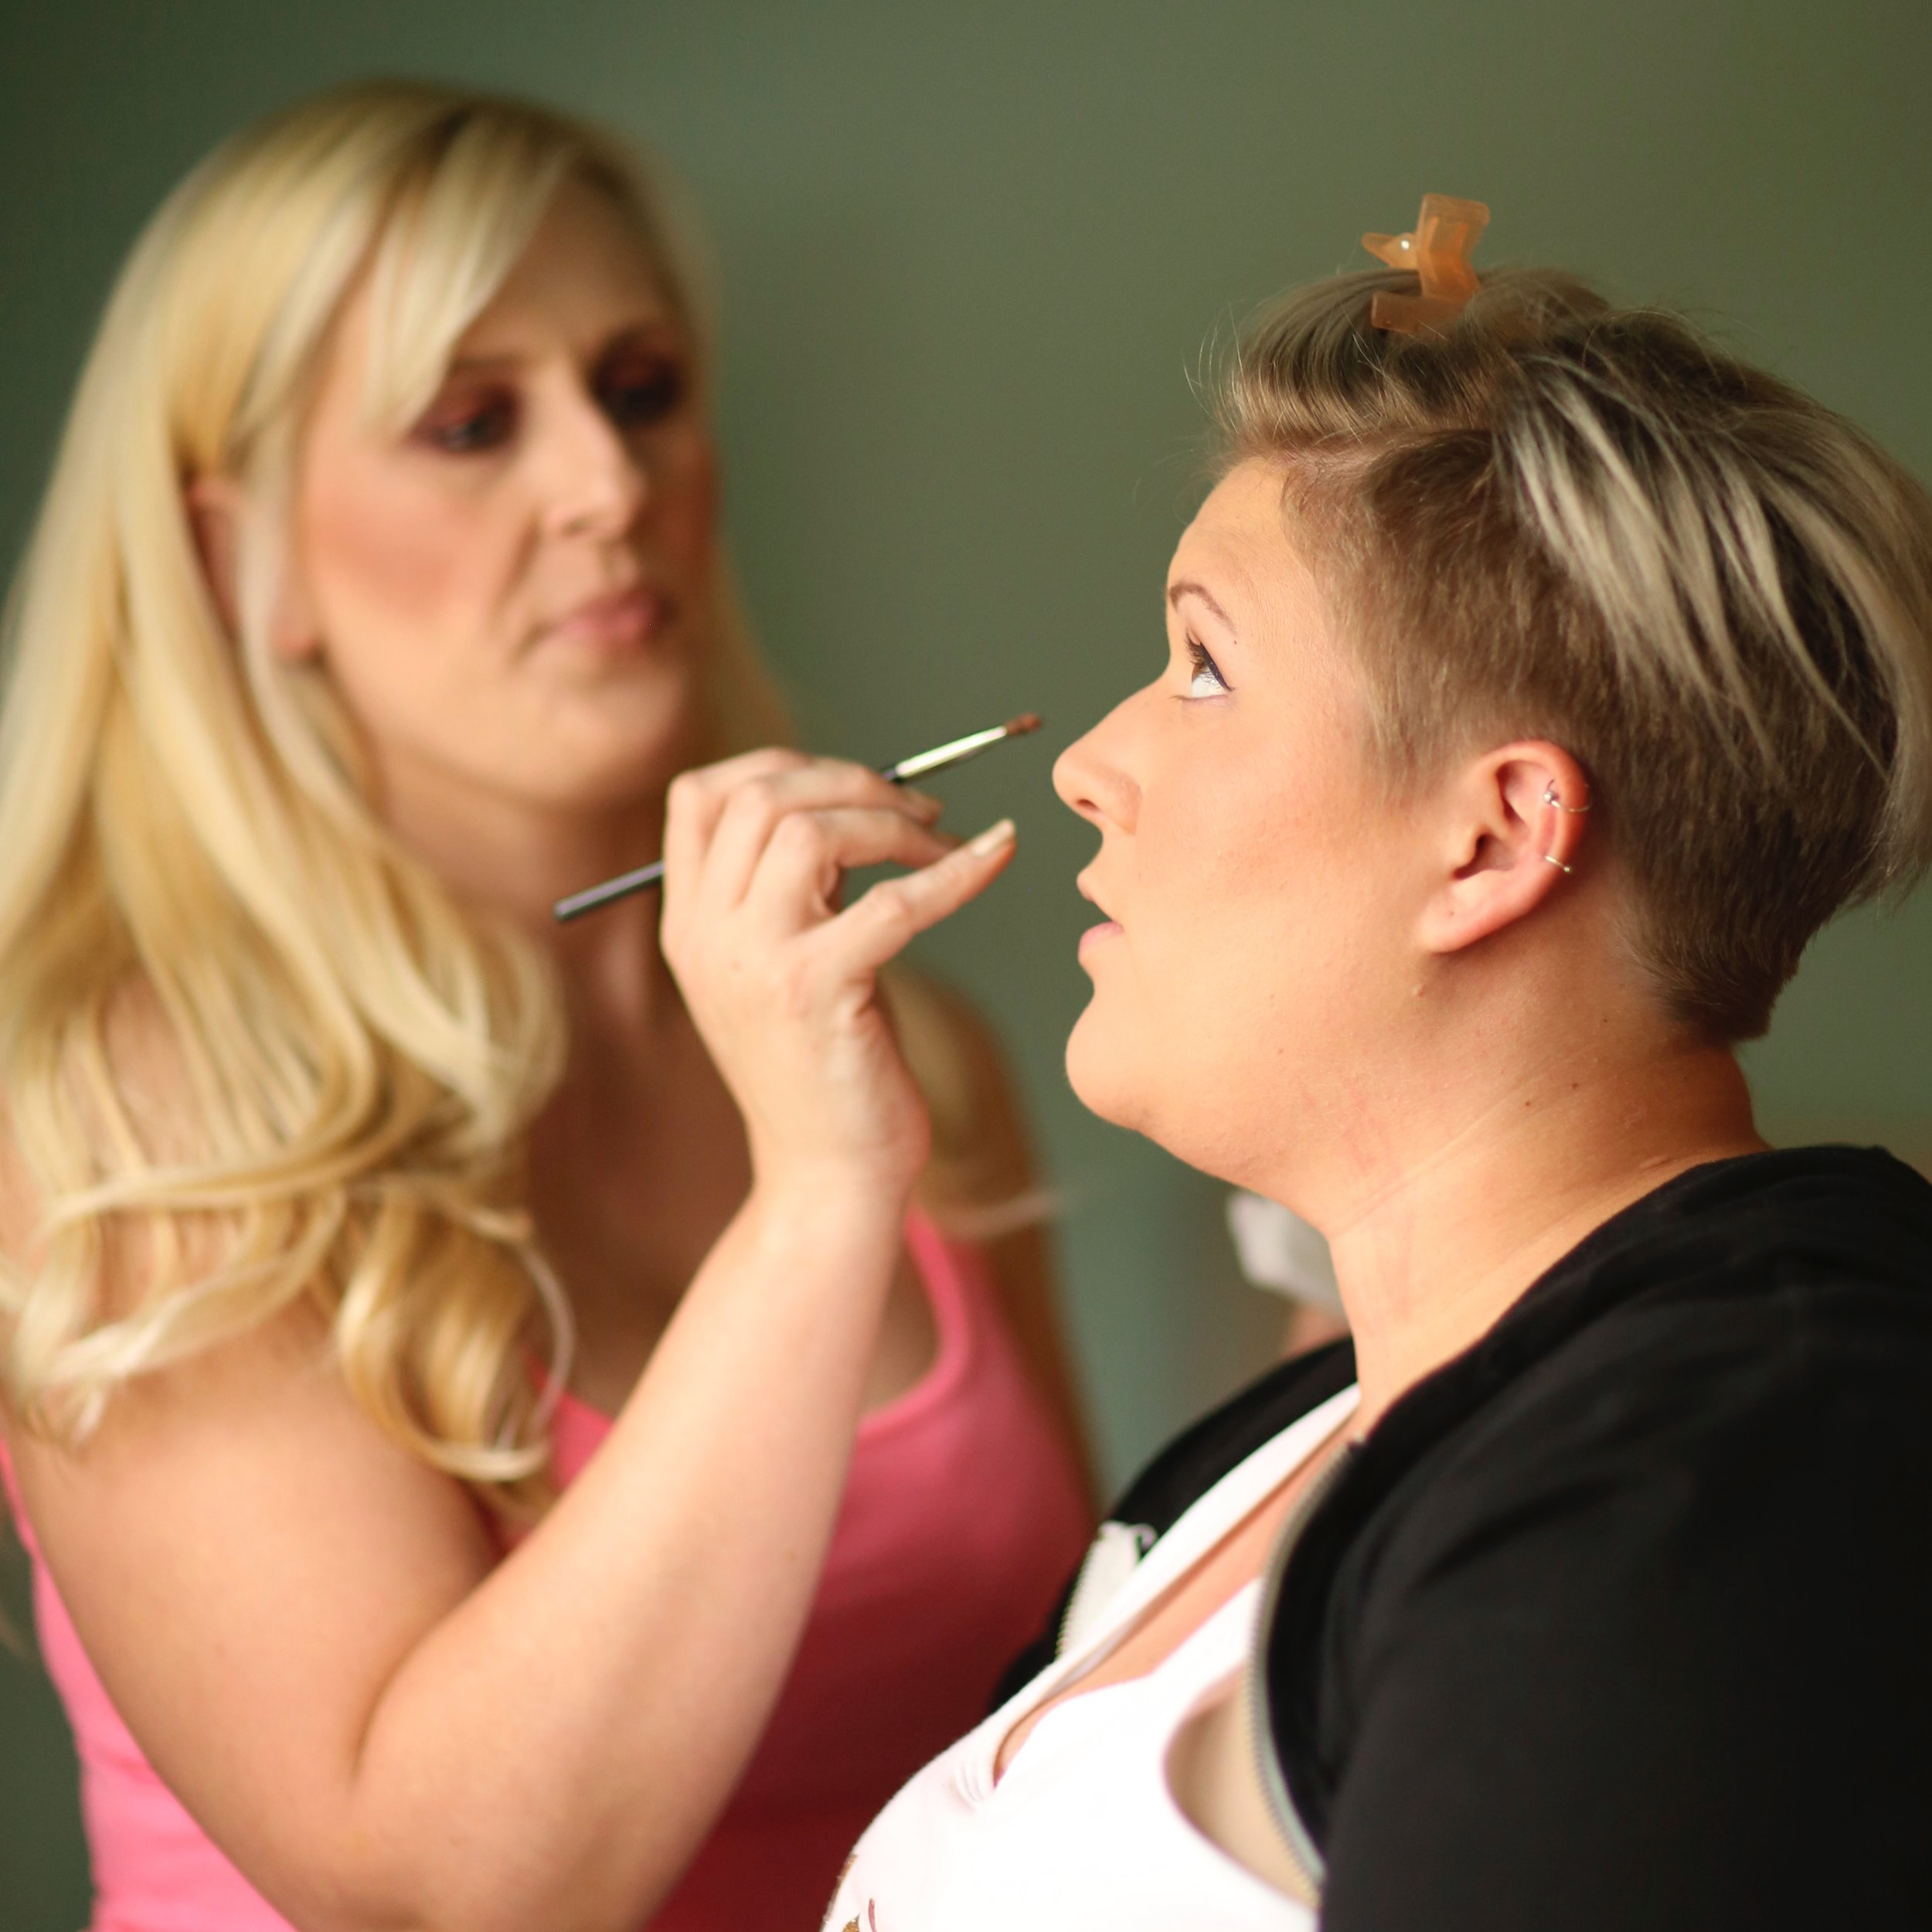 A professional make up artist applying make to a bride on her wedding day.